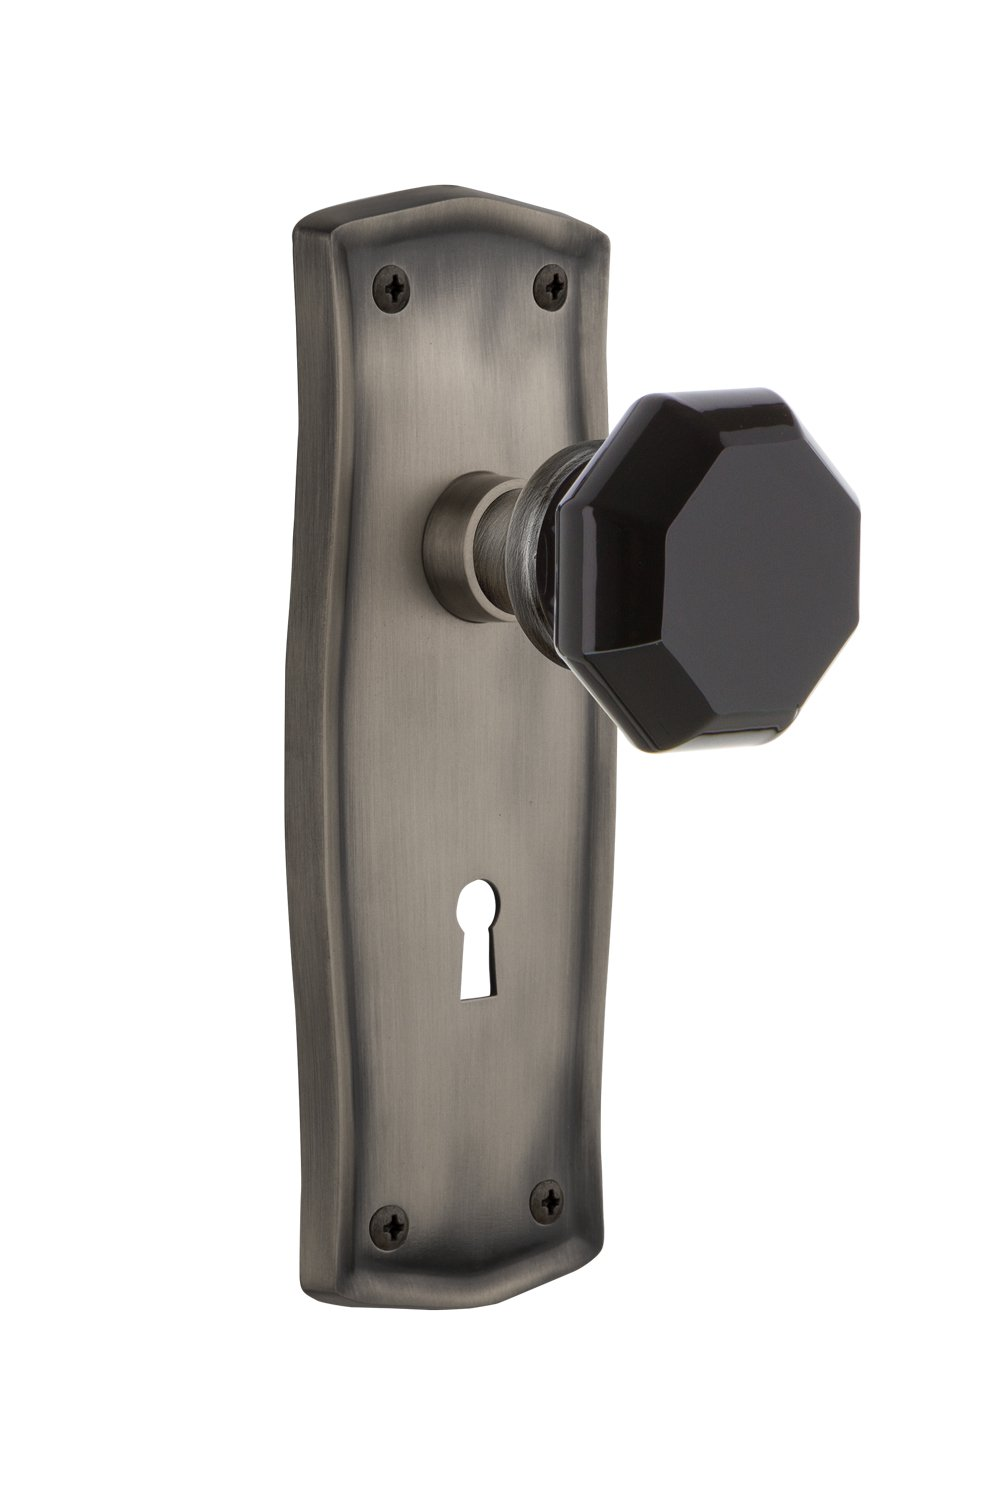 Nostalgic Warehouse 725923 Prairie Plate with Keyhole Privacy Waldorf Black Door Knob in Polished Brass 2.375